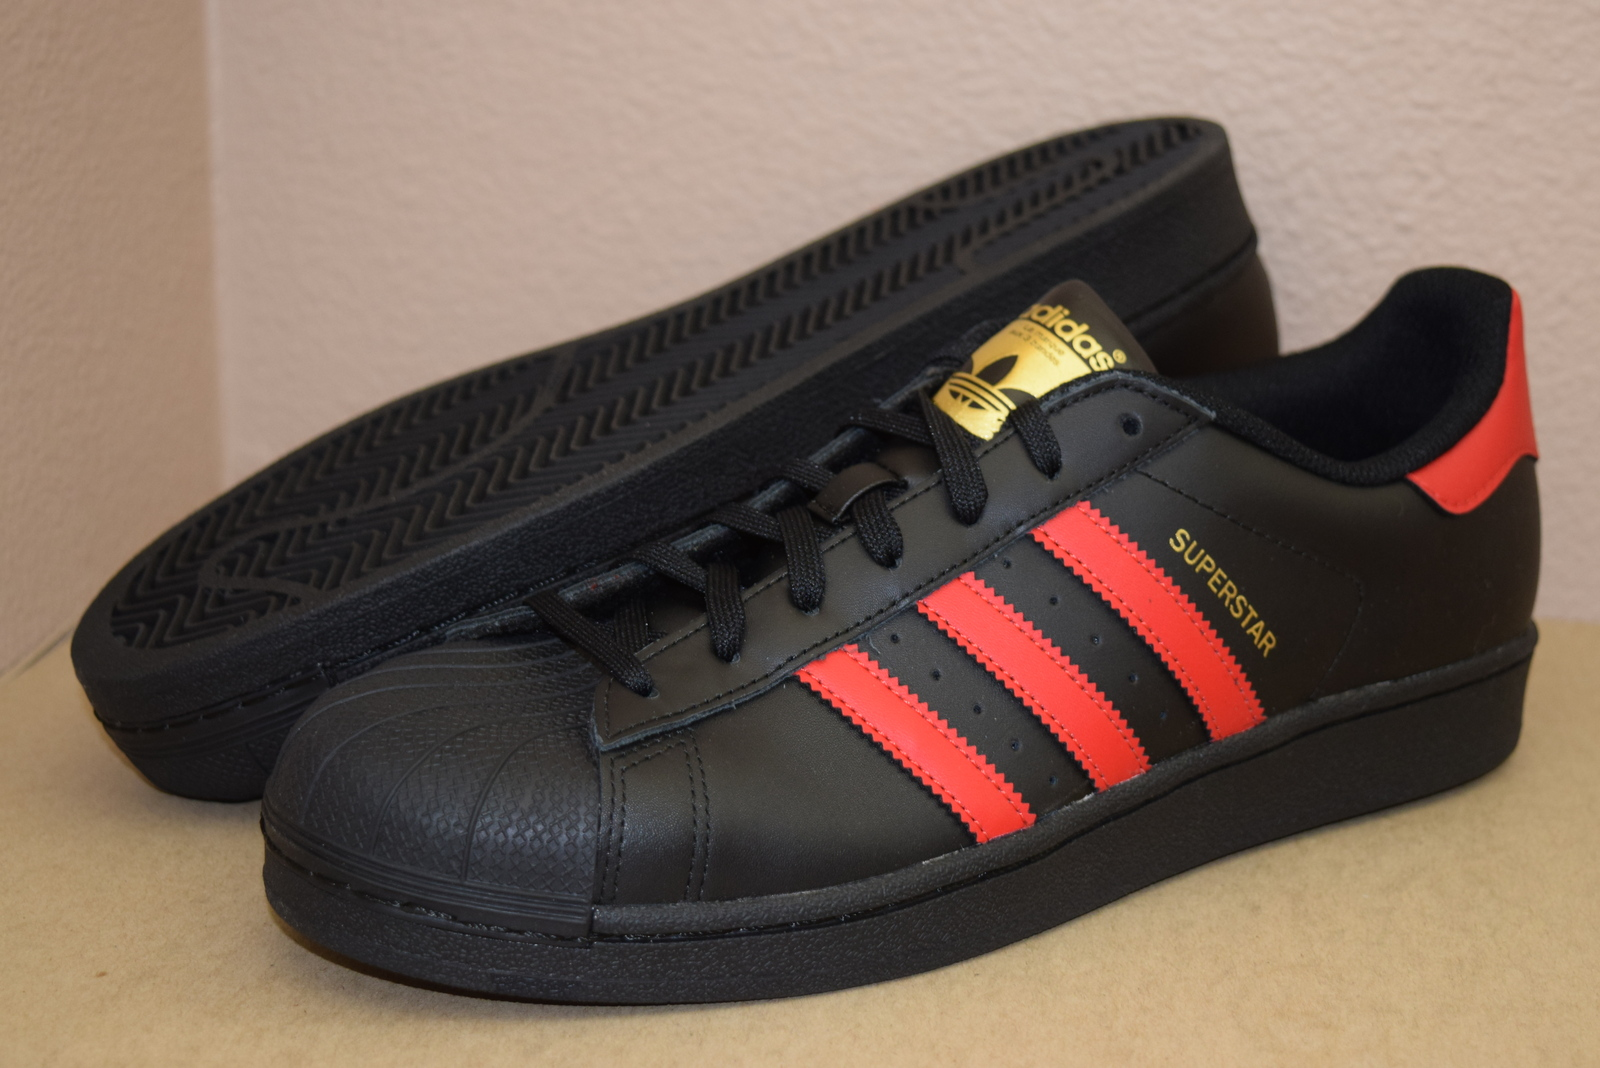 nib adidas superstar ii  chaussures  chaussures  (s) et articles similaires 740764